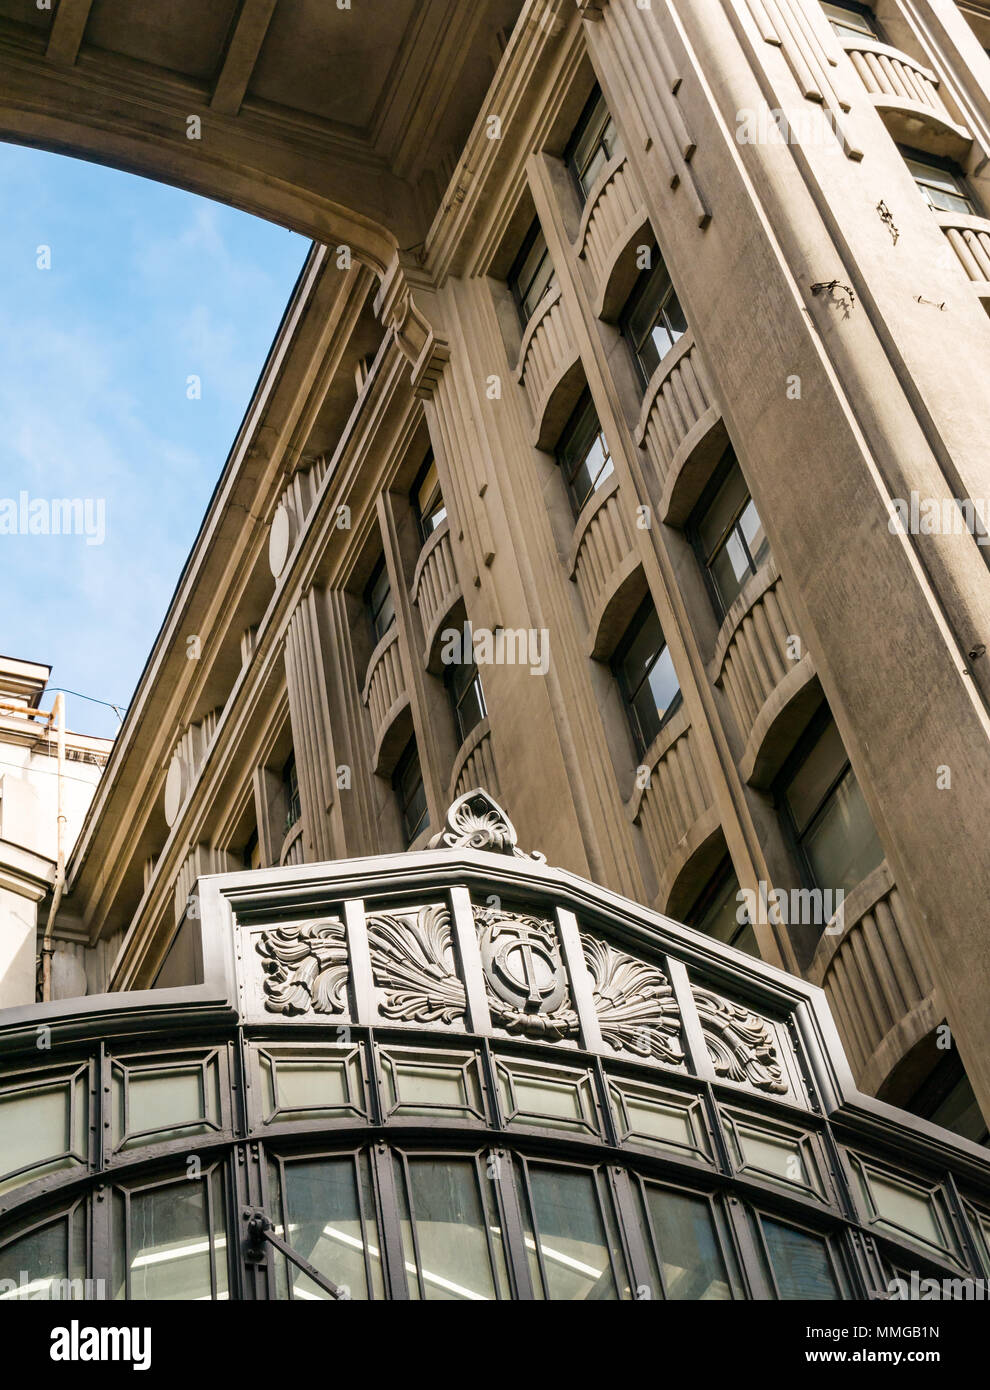 Looking up at tall Art Deco building, Santiago, Chile, South America Stock Photo